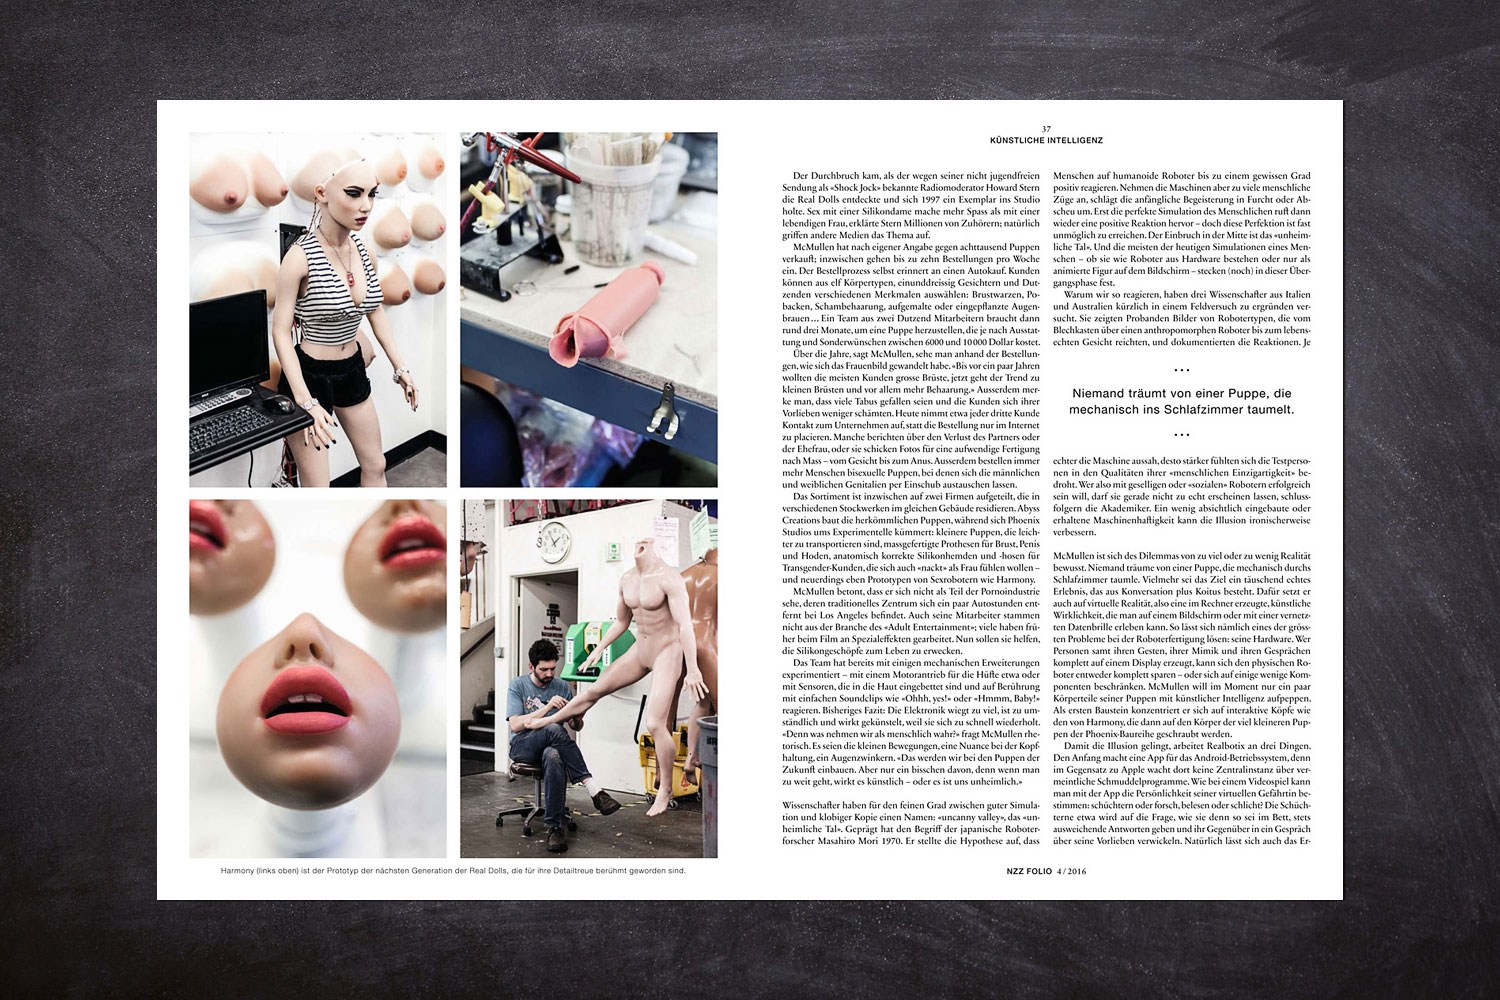 PATRICK STRATTNER PHOTOGRAPHY | TEAR SHEETS | Abyss Creations / NZZ Folio